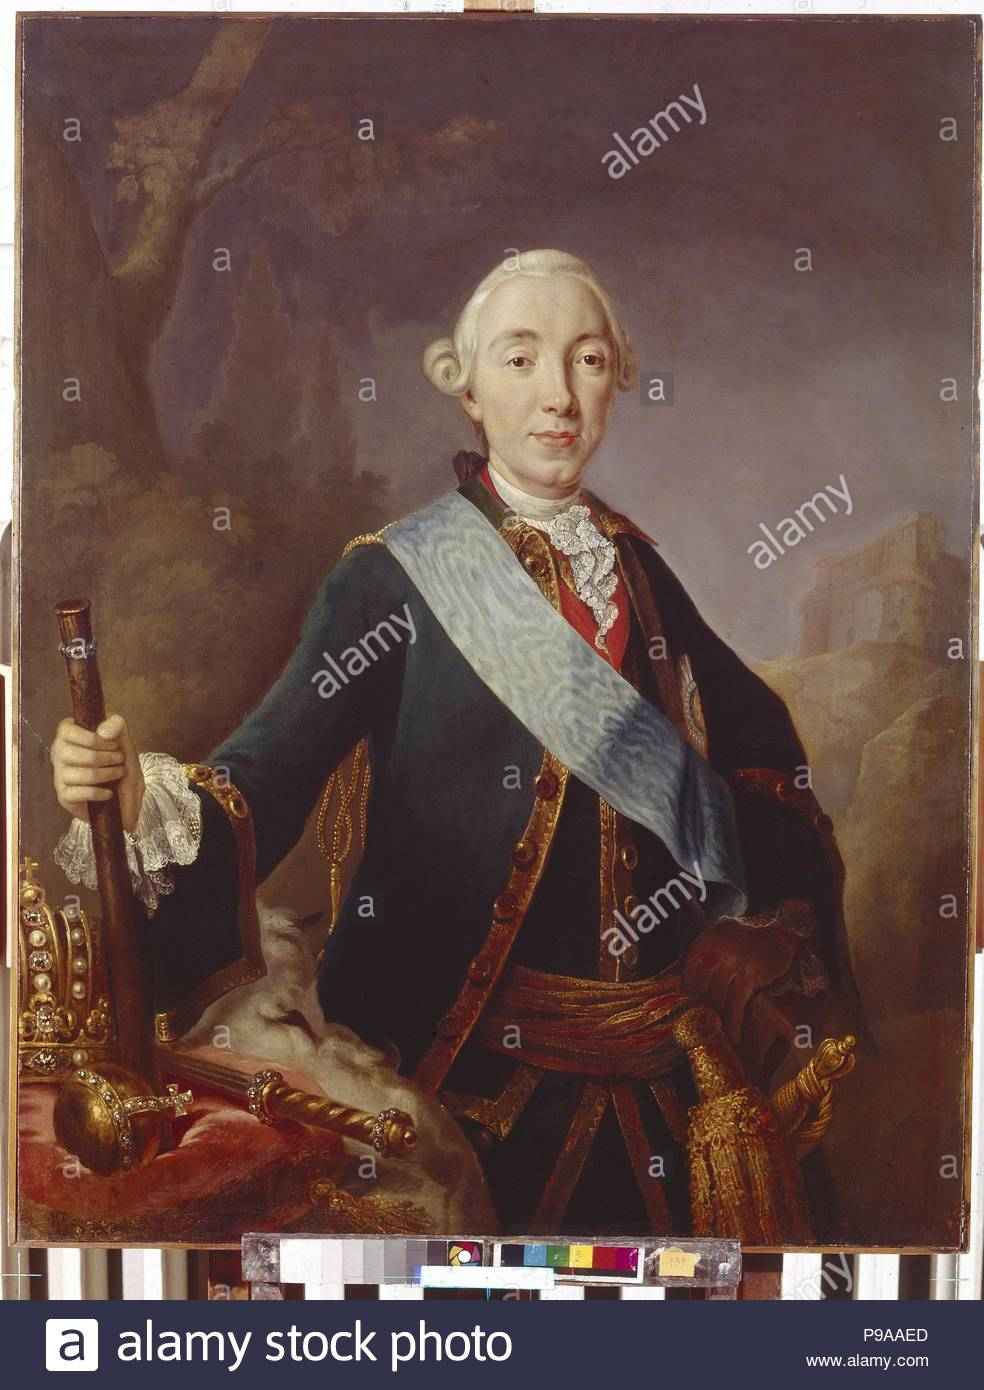 Portrait of the Tsar Peter III of Russia (1728-1762). Museum: State Hermitage, St. Petersburg. - Stock Image